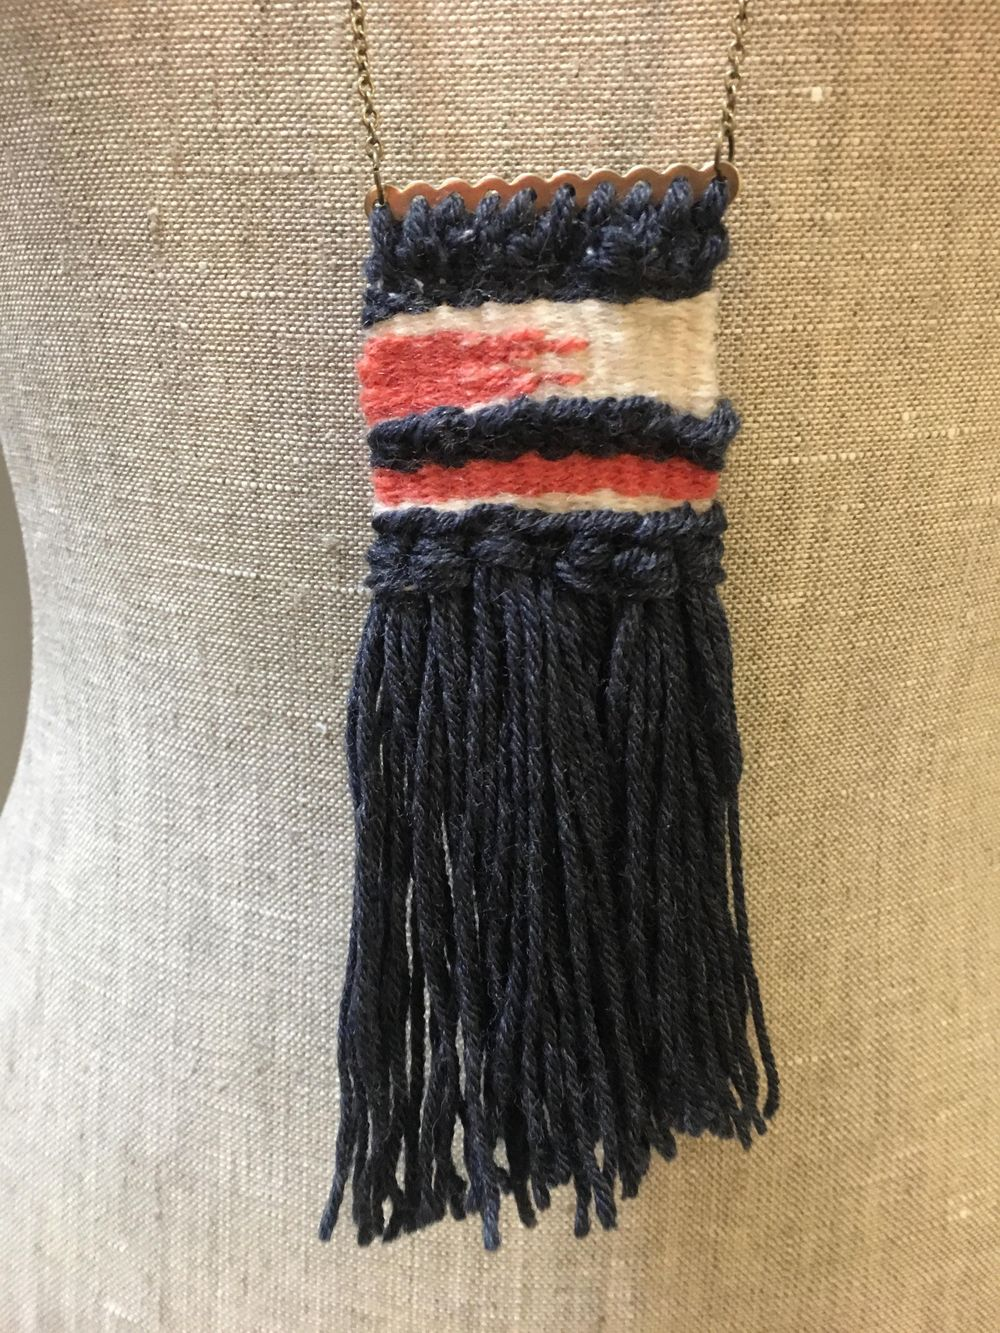 Weaving Small - image 3 - student project